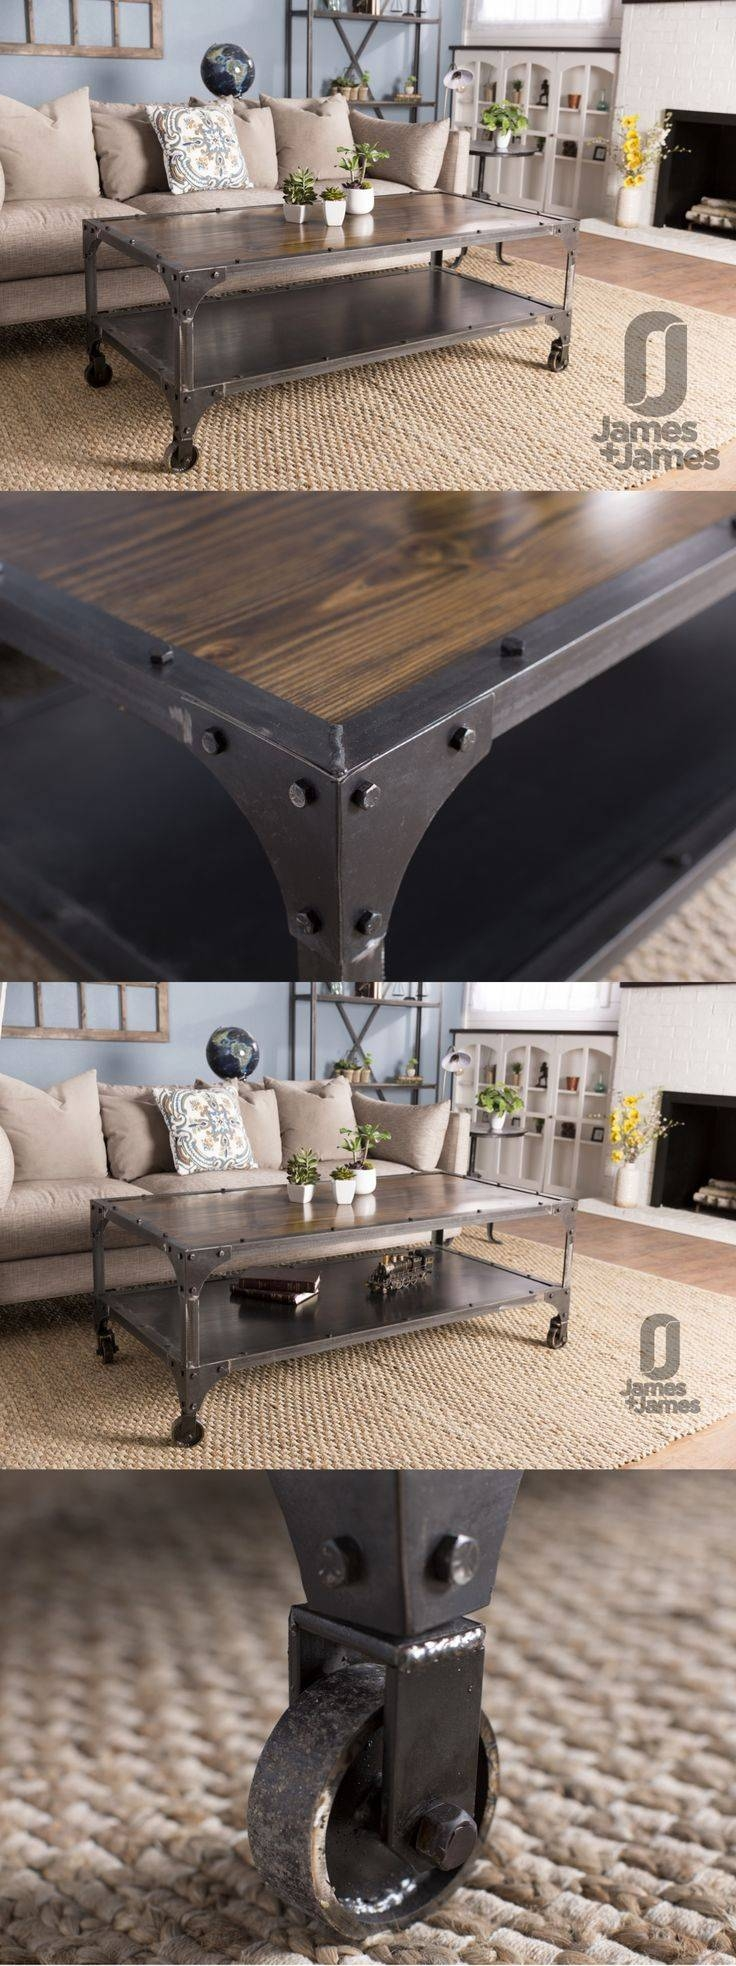 Best 25+ Metal Coffee Tables Ideas On Pinterest | Best Coffee in Retro Glitz Glass Coffee Tables (Image 4 of 30)